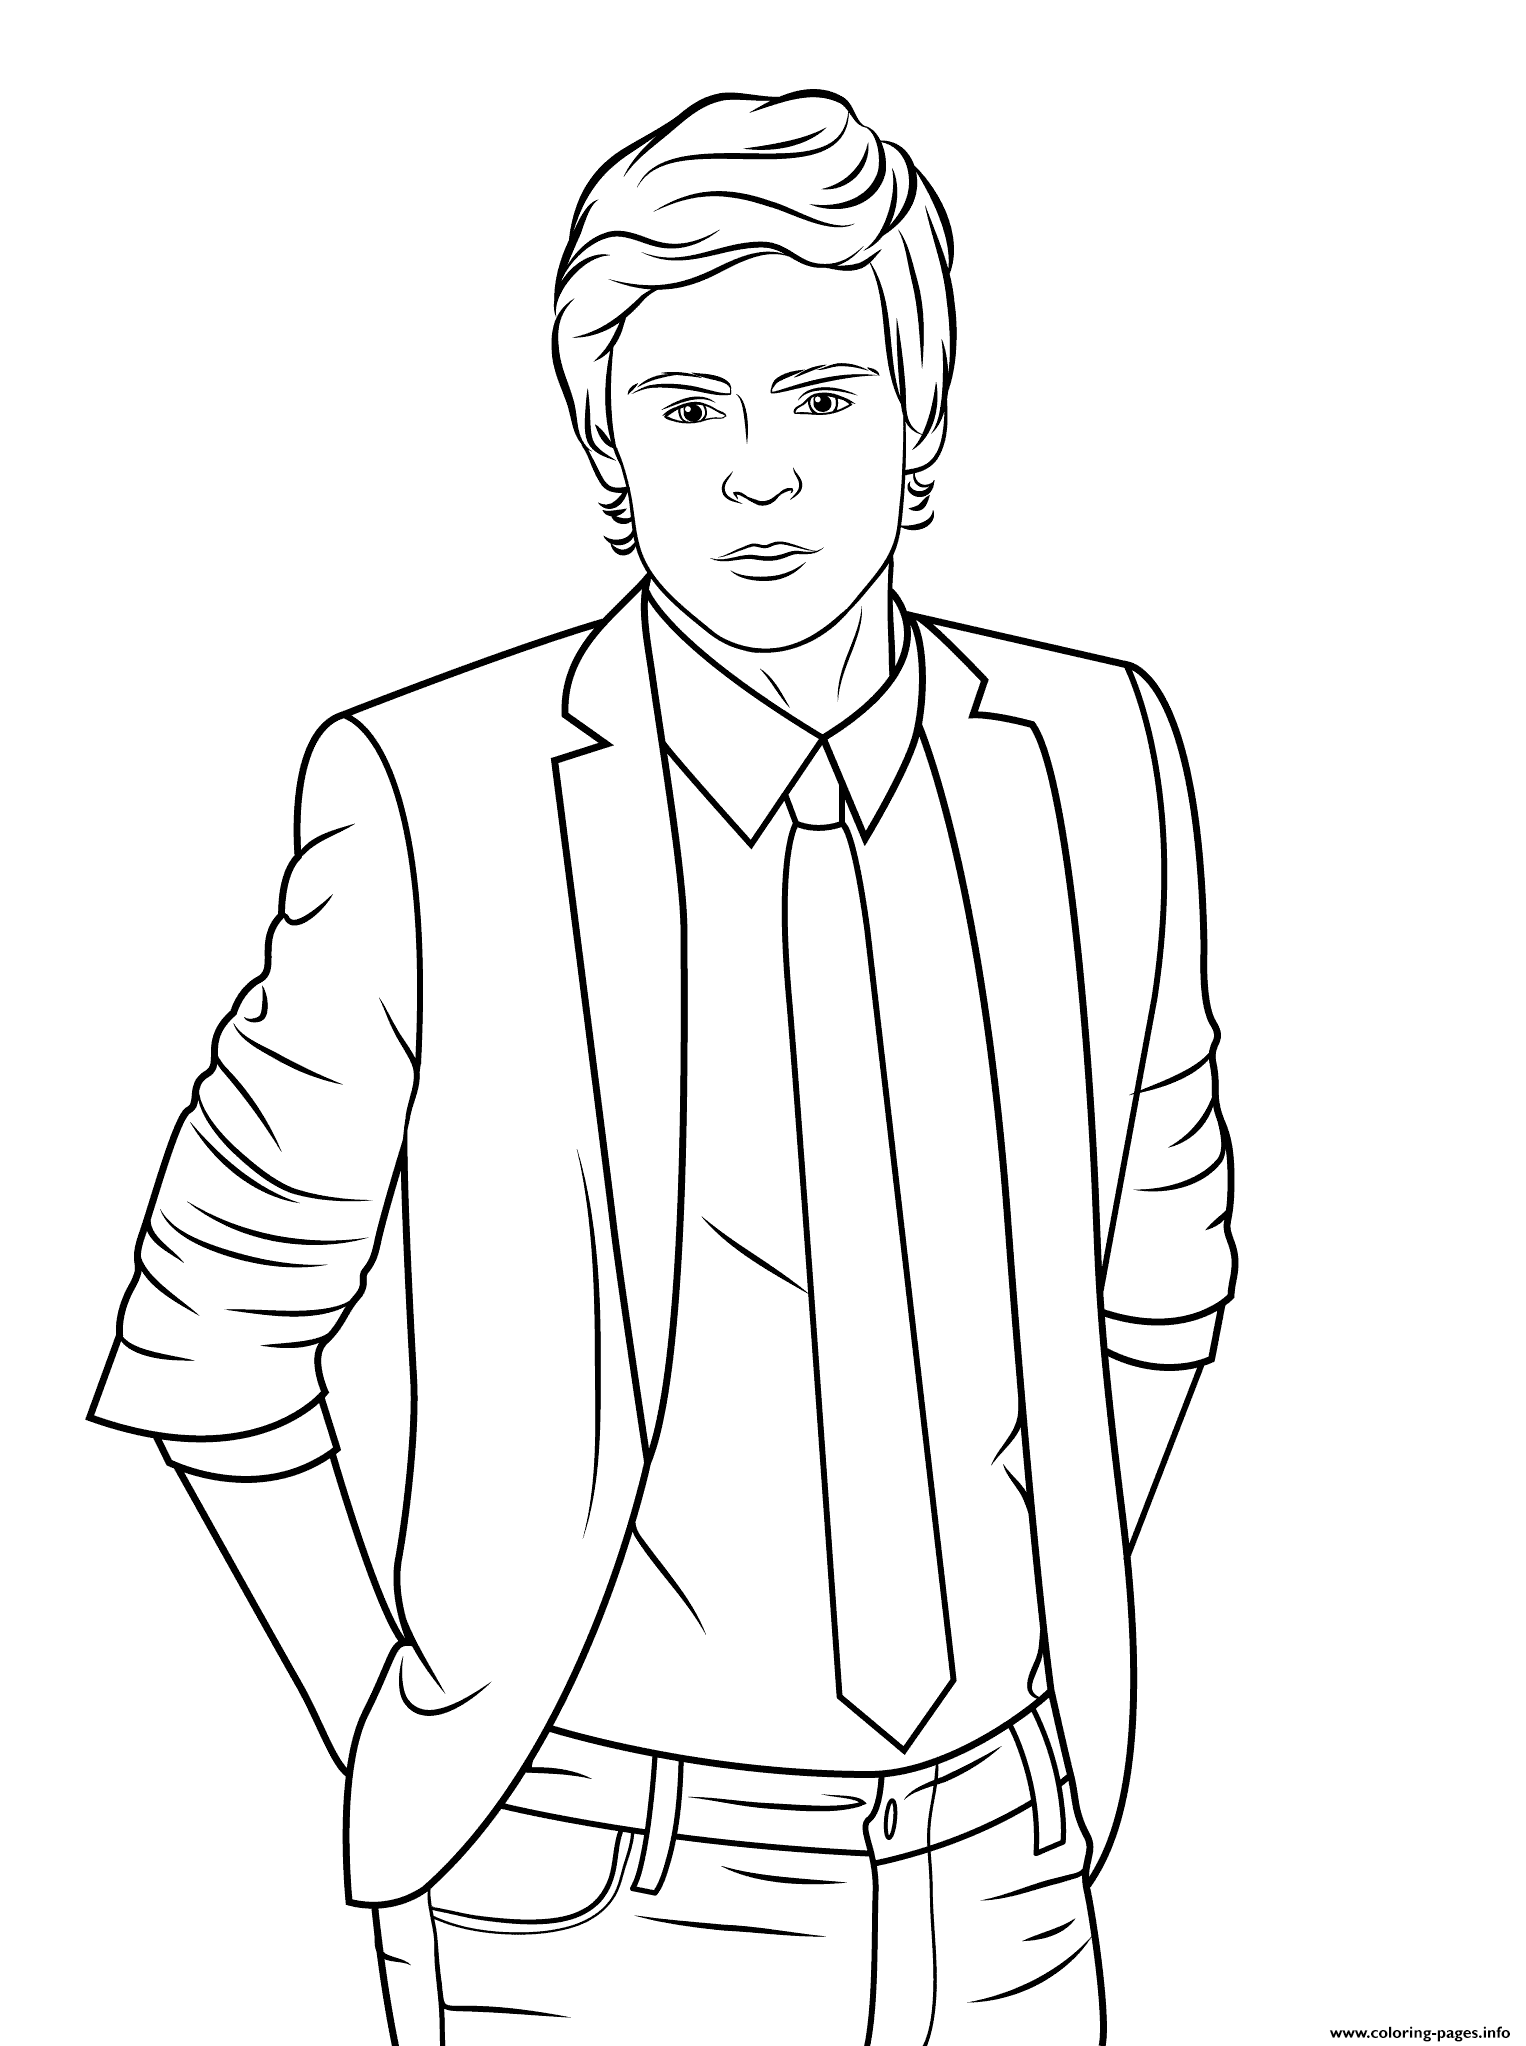 Zac Efron Celebrity Coloring Pages Printable